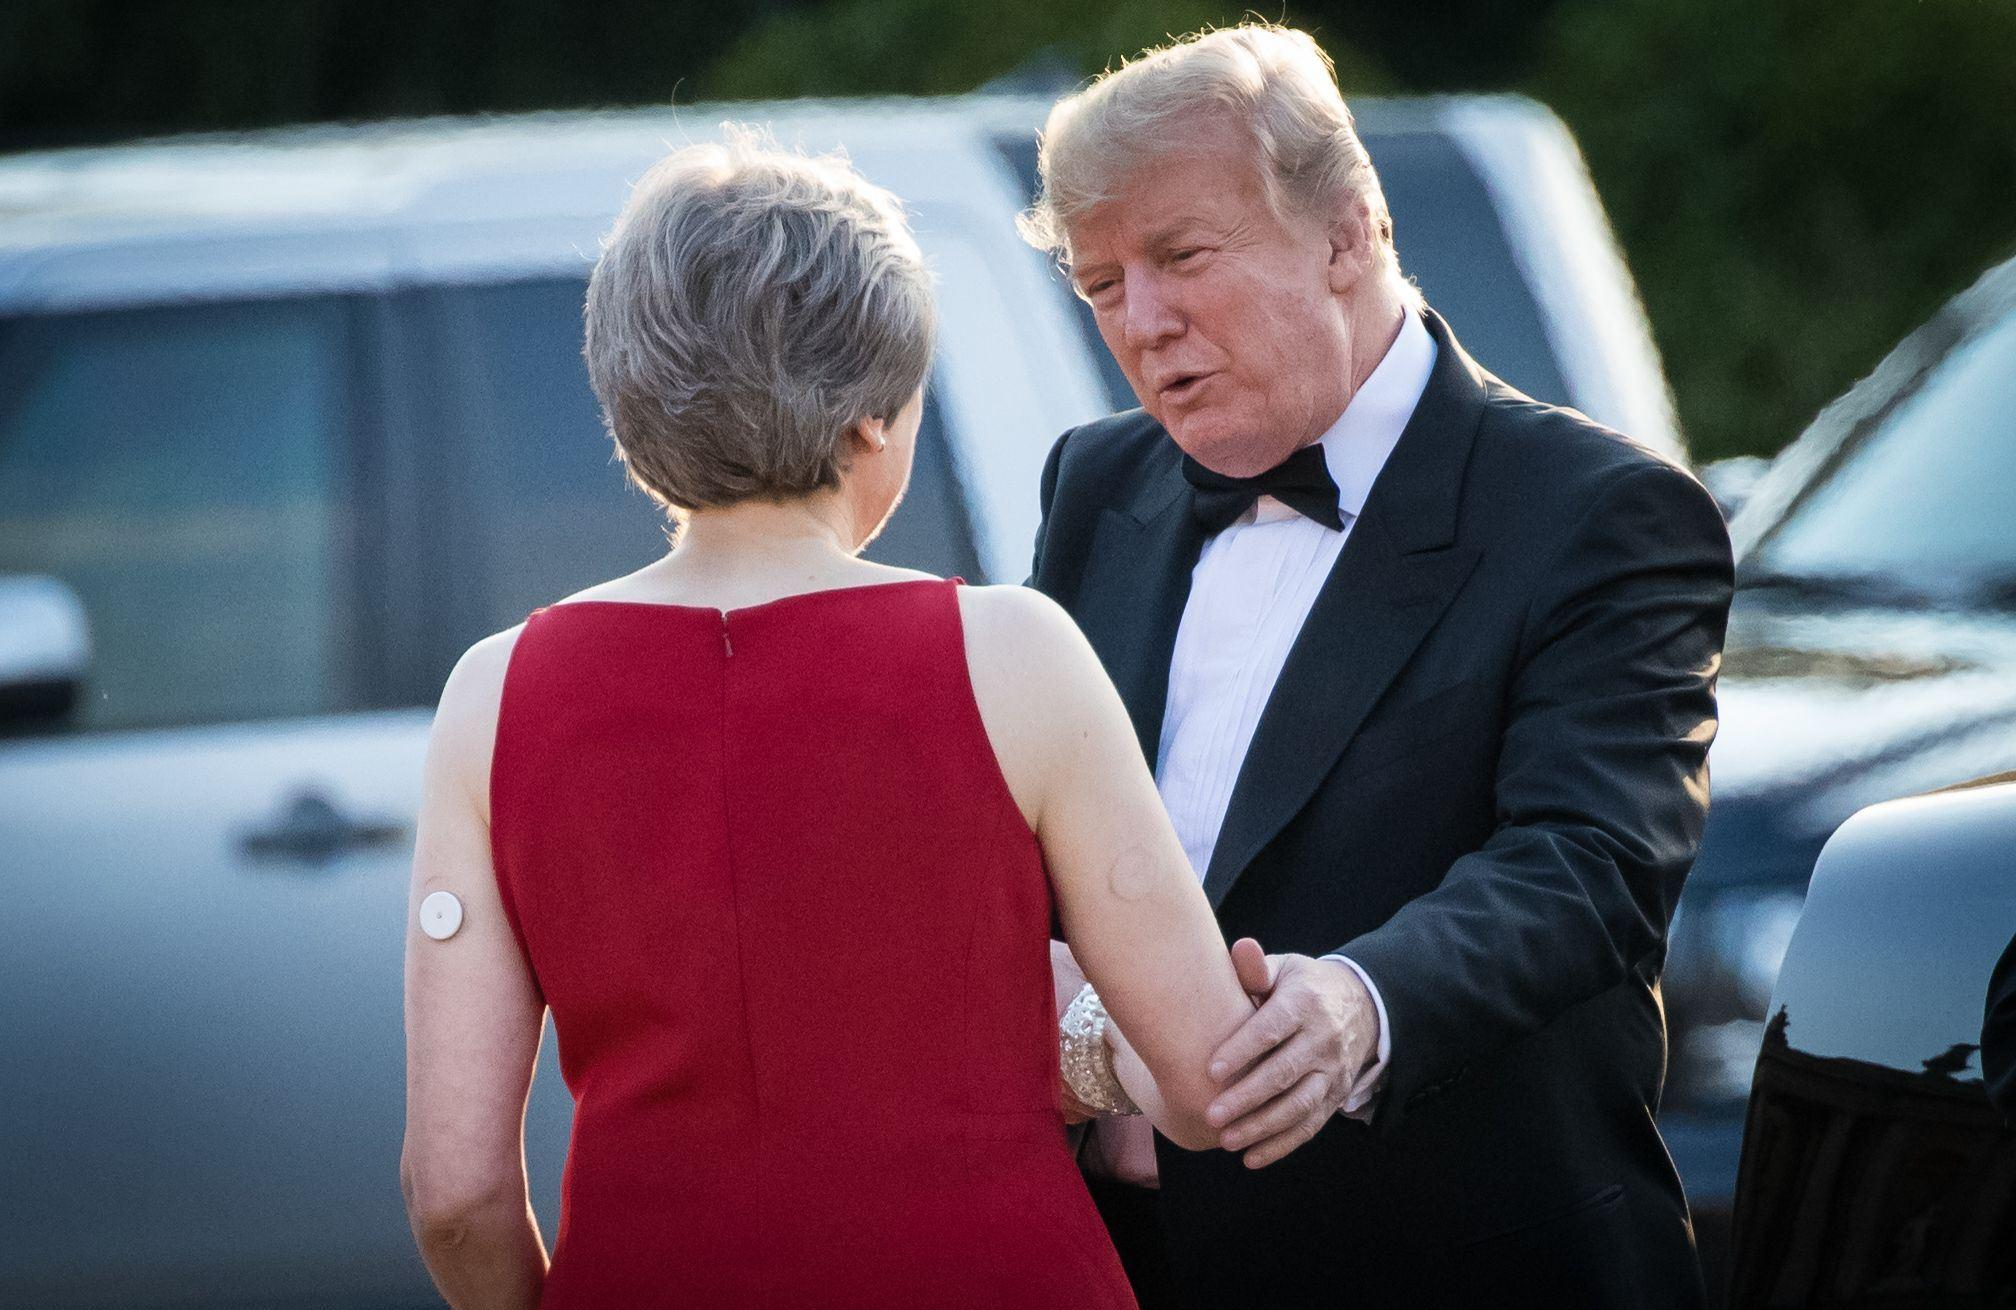 Protests gear up to greet Trump on United Kingdom  state visit